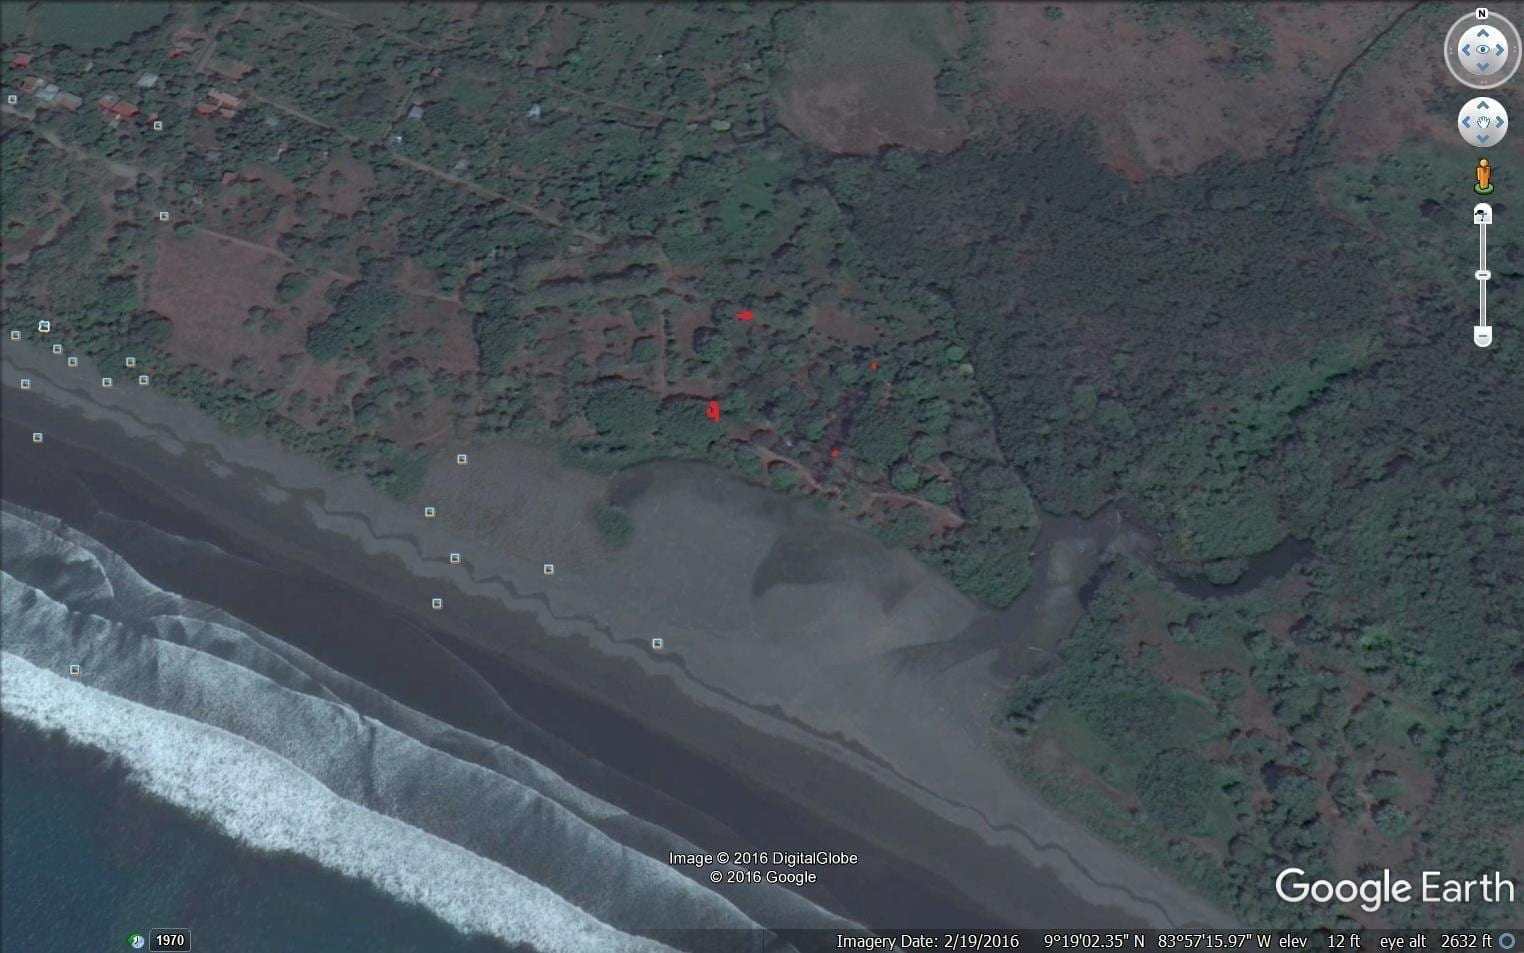 1.2 ACRES - Incredible Beachfront Property With Concession Priced To Sell!!!